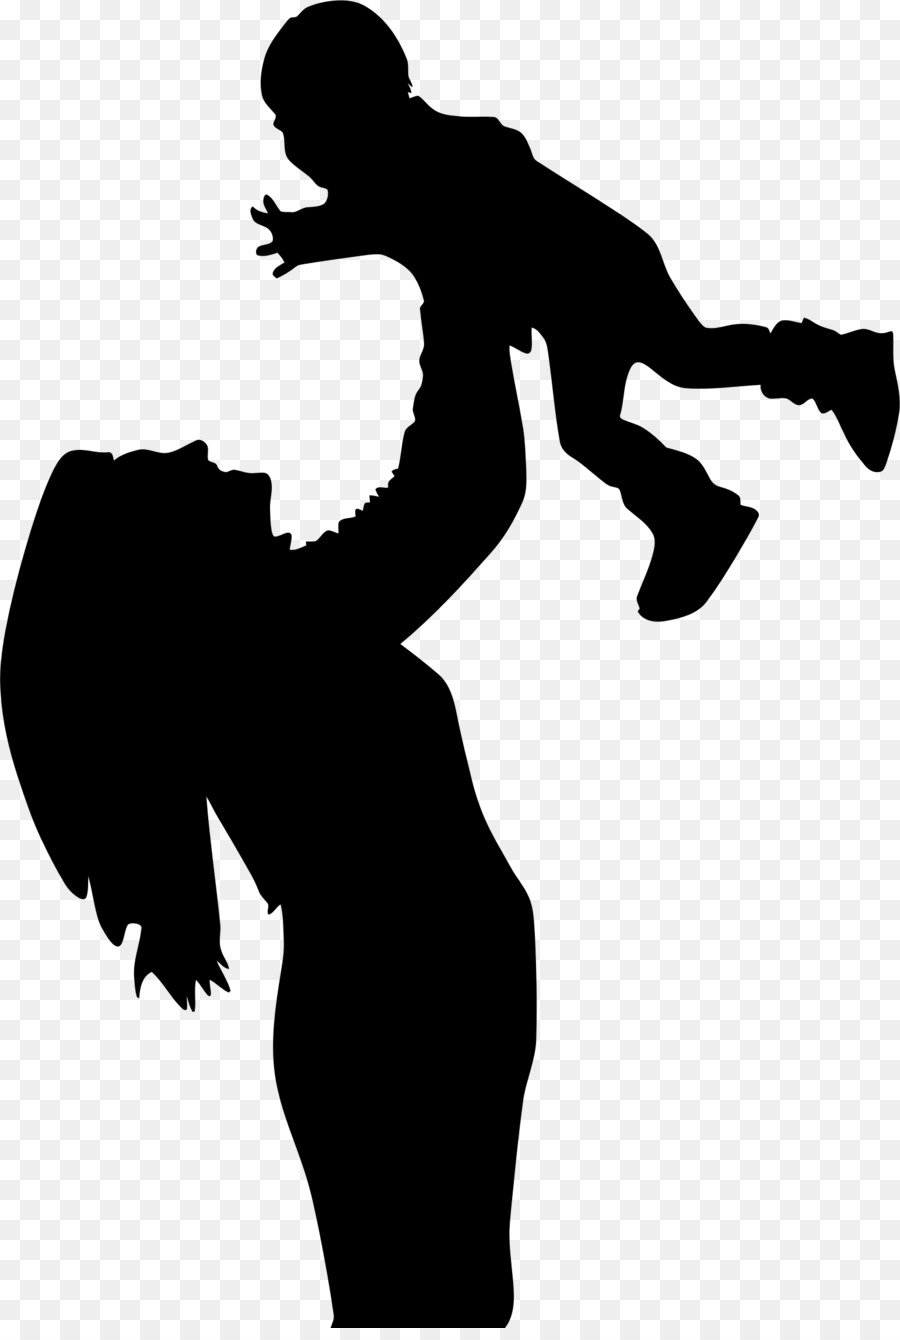 Clipart mom shadow. Mother cartoon child silhouette